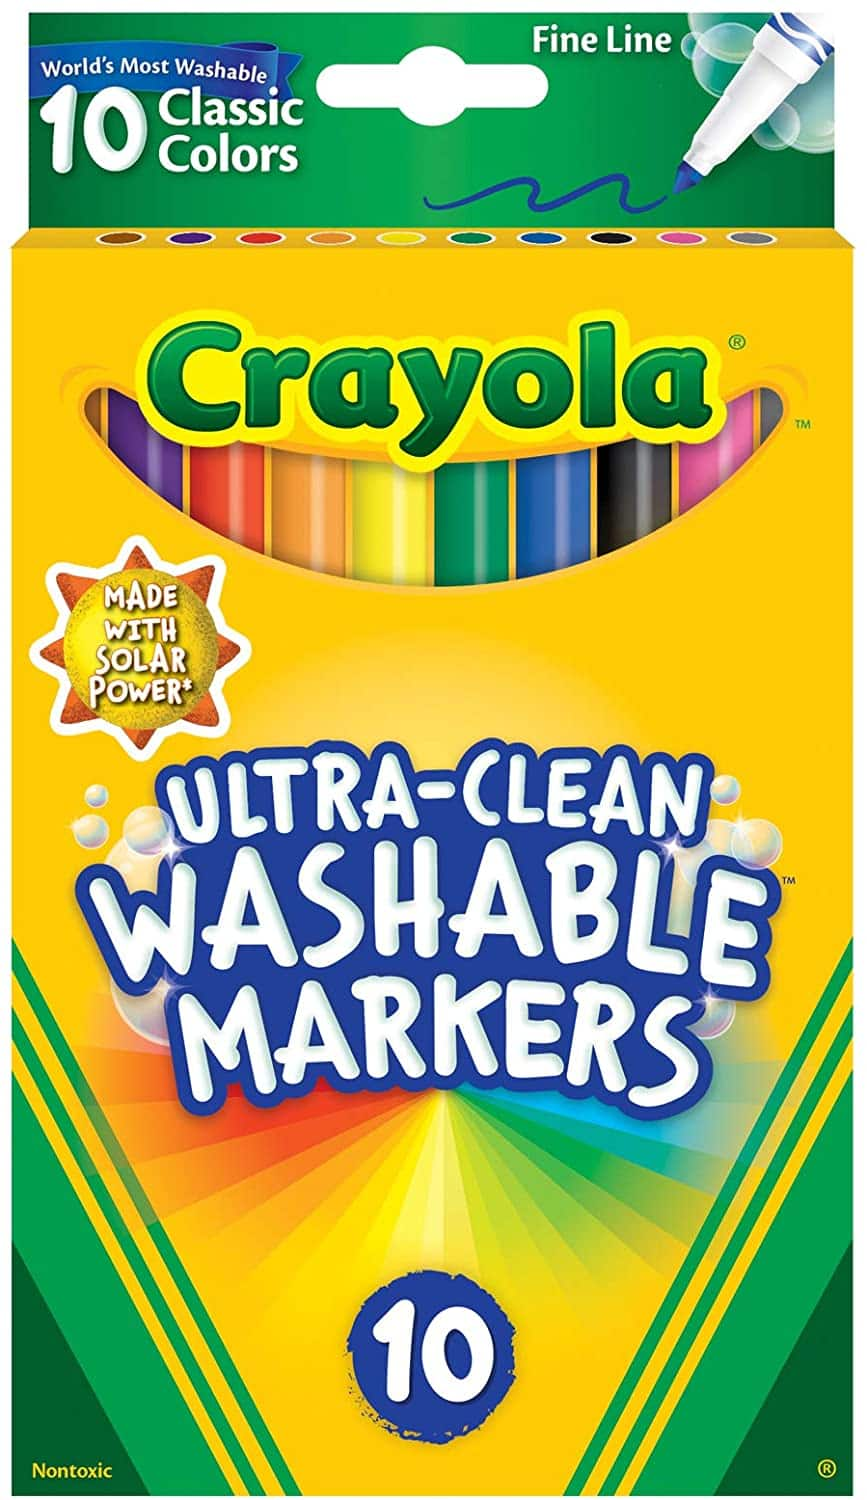 Crayola Ultra Clean Washable Markers, Fine Line, Classic Colors, 10 Count $2.47 FS w/ Prime